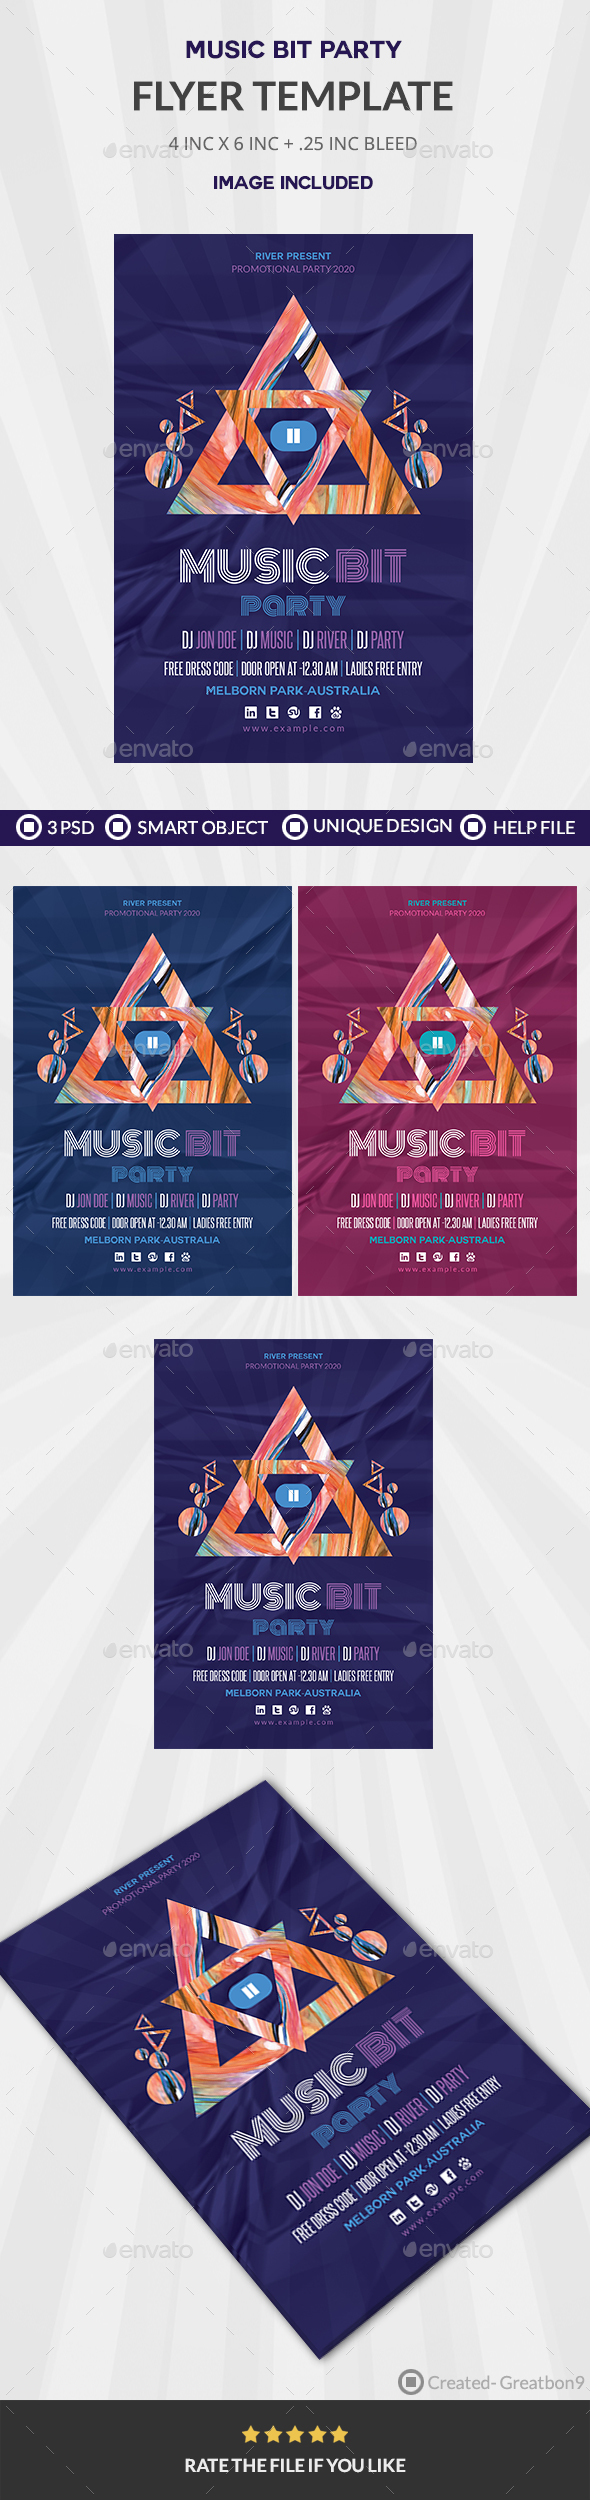 Minimal Music Bit Party Flyer - Clubs & Parties Events